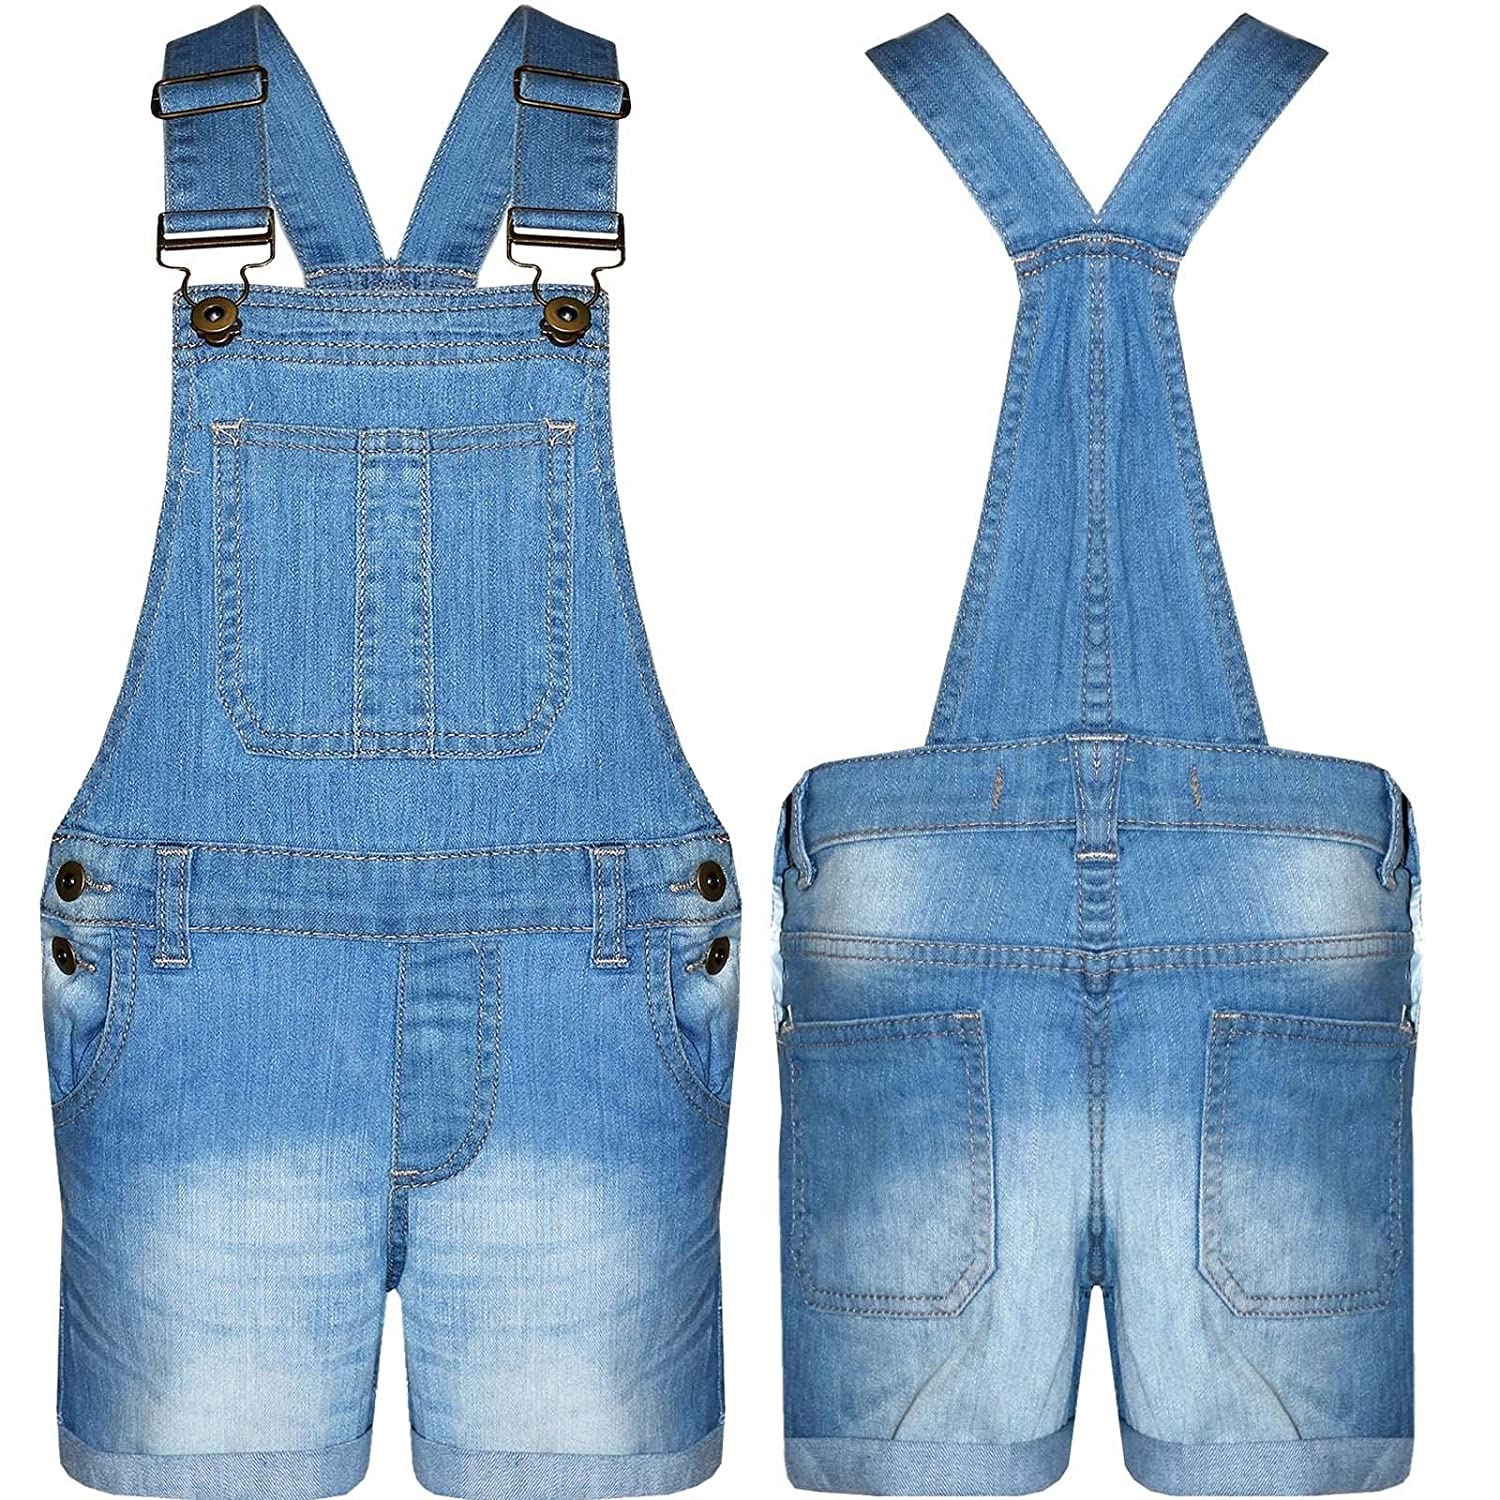 Lyallpur Girls Dungaree 100% Cotton Kids Jeans Denim Shorts Dress Jumpsuits 7-13 Years